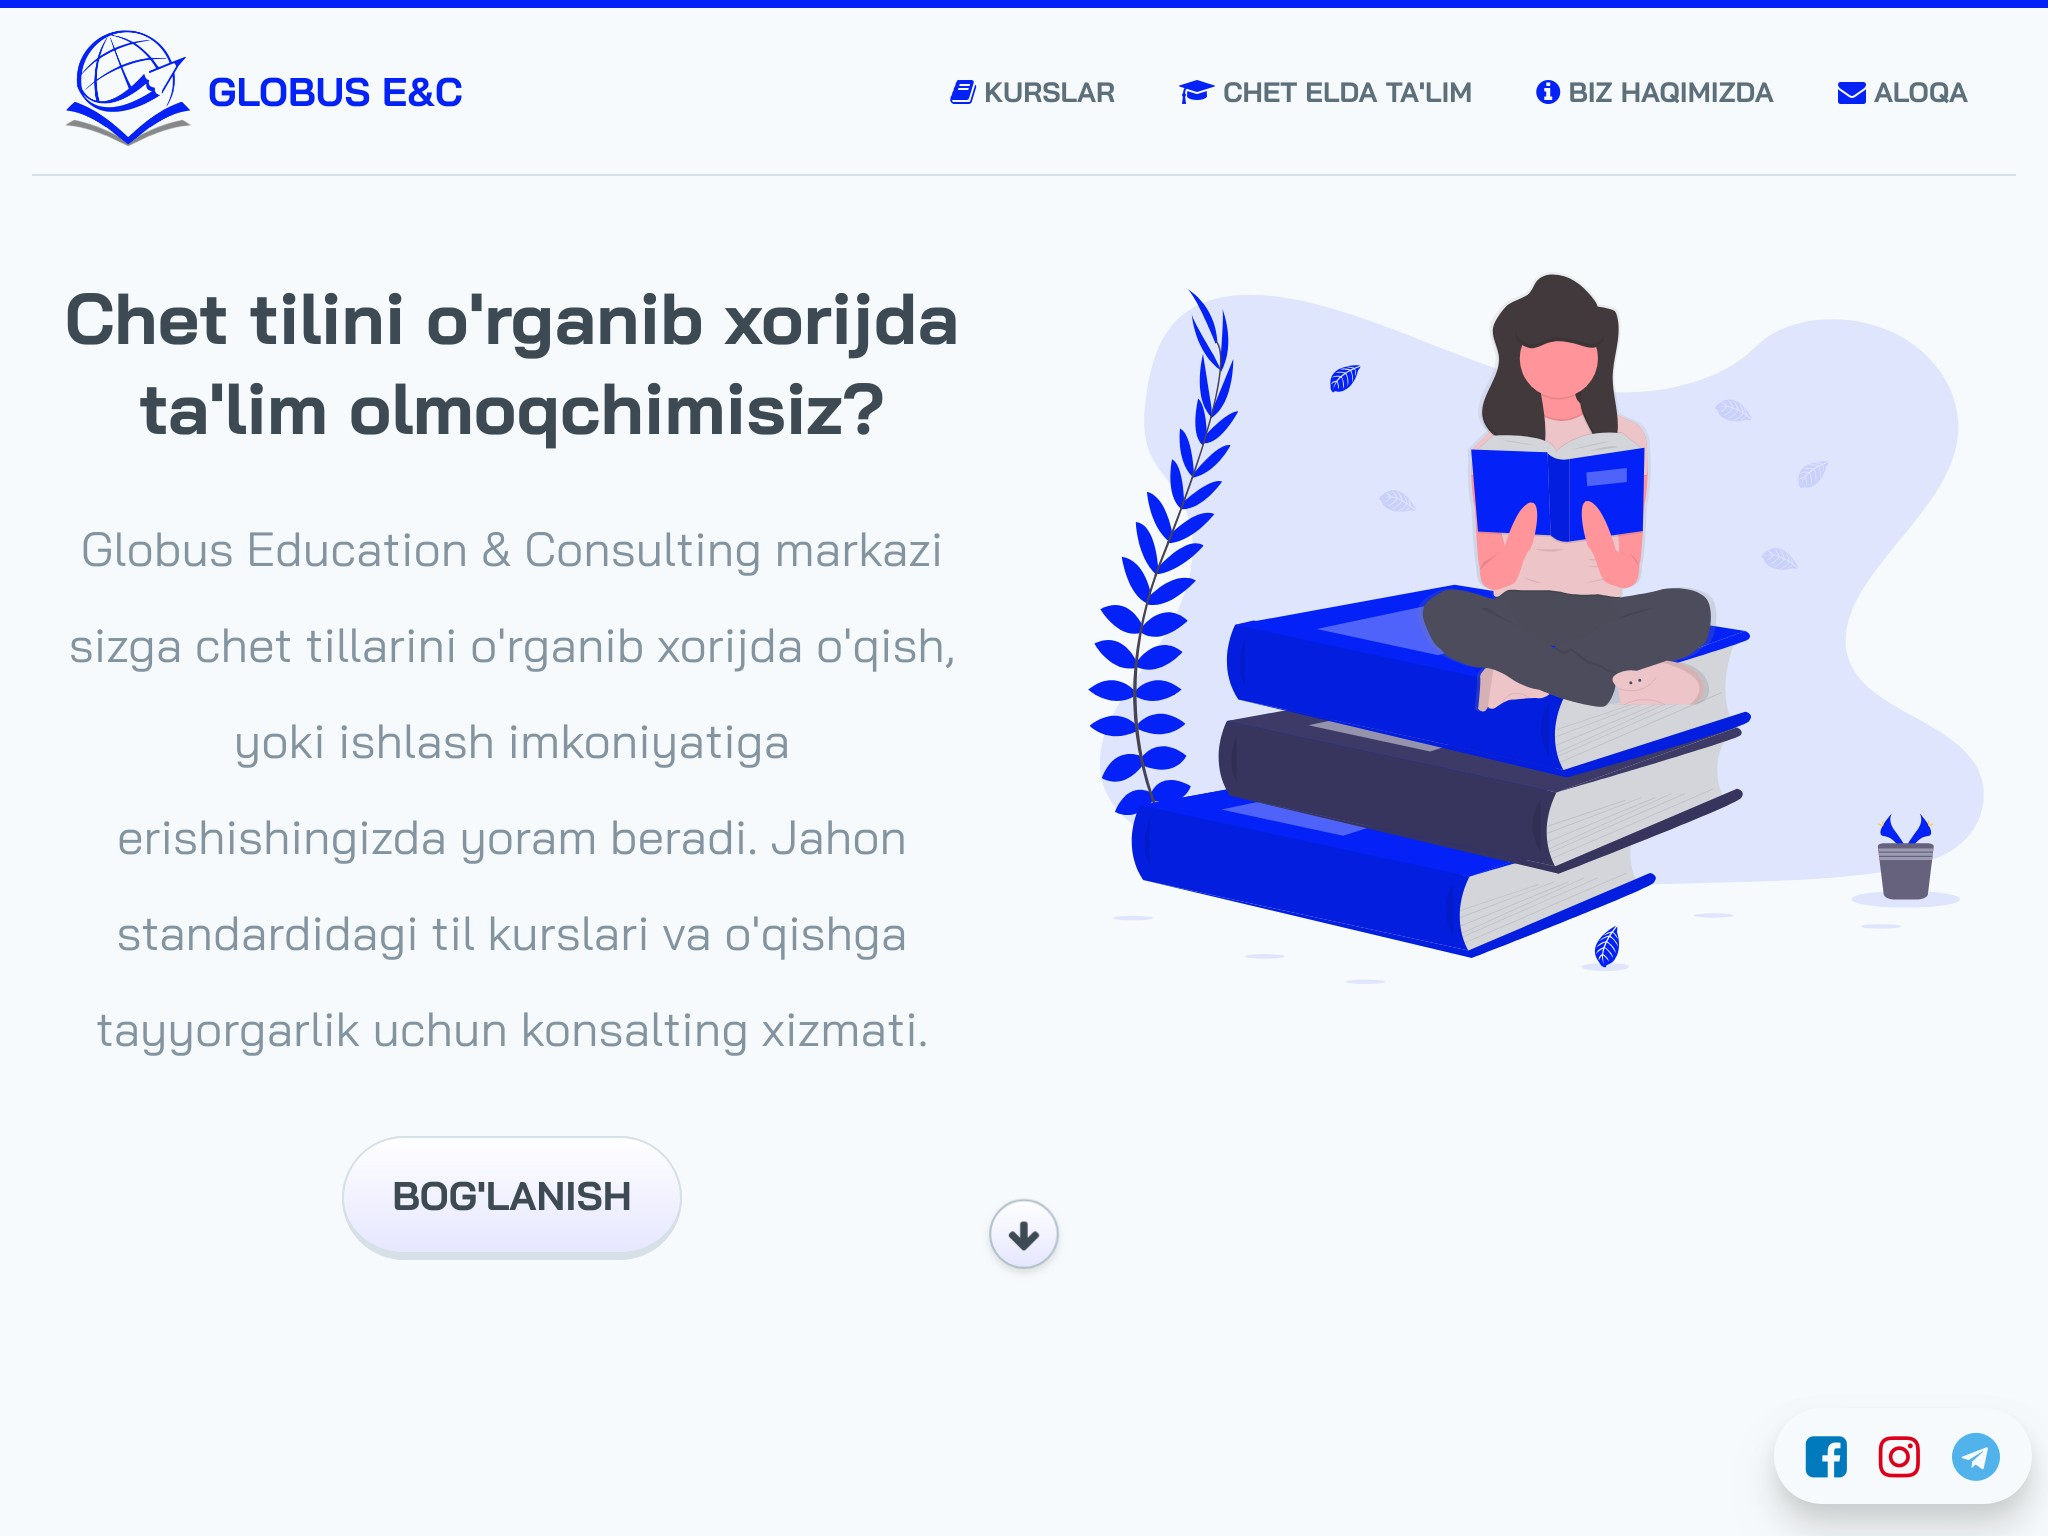 Globus E&C Website Screenshot